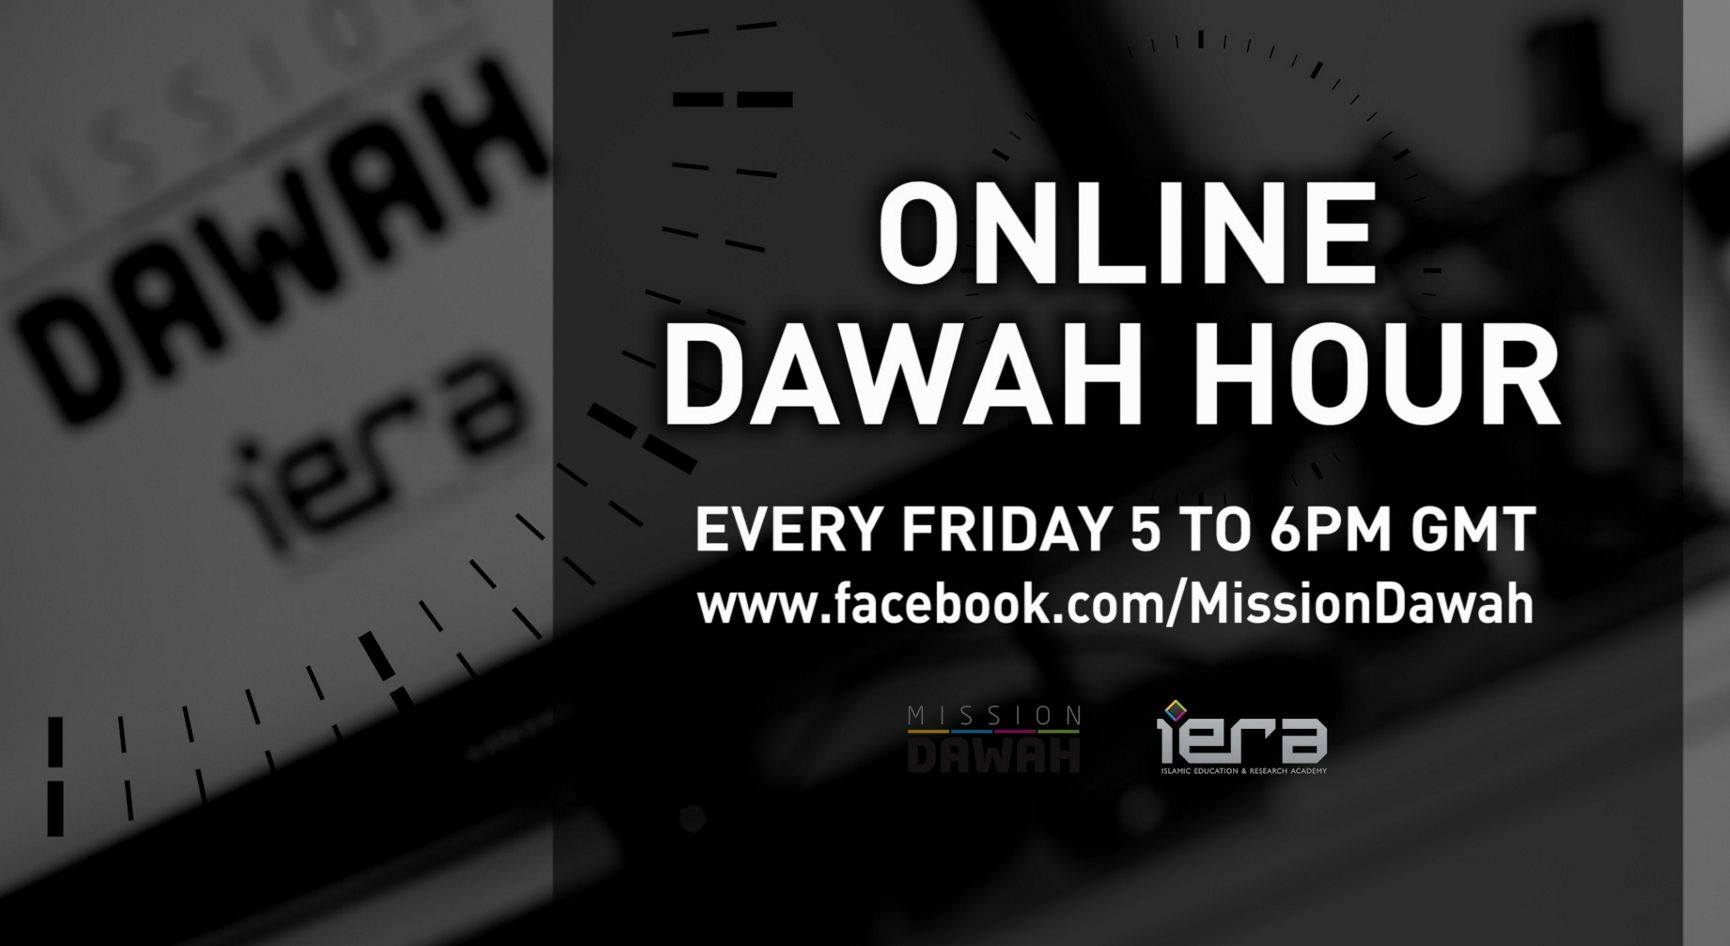 The idea is very simple.. every Friday between 5 to 6 pm (GMT) we will be sending out a message (a video, picture, article or message) which we want all Muslims around the world to share online with non-Muslims.